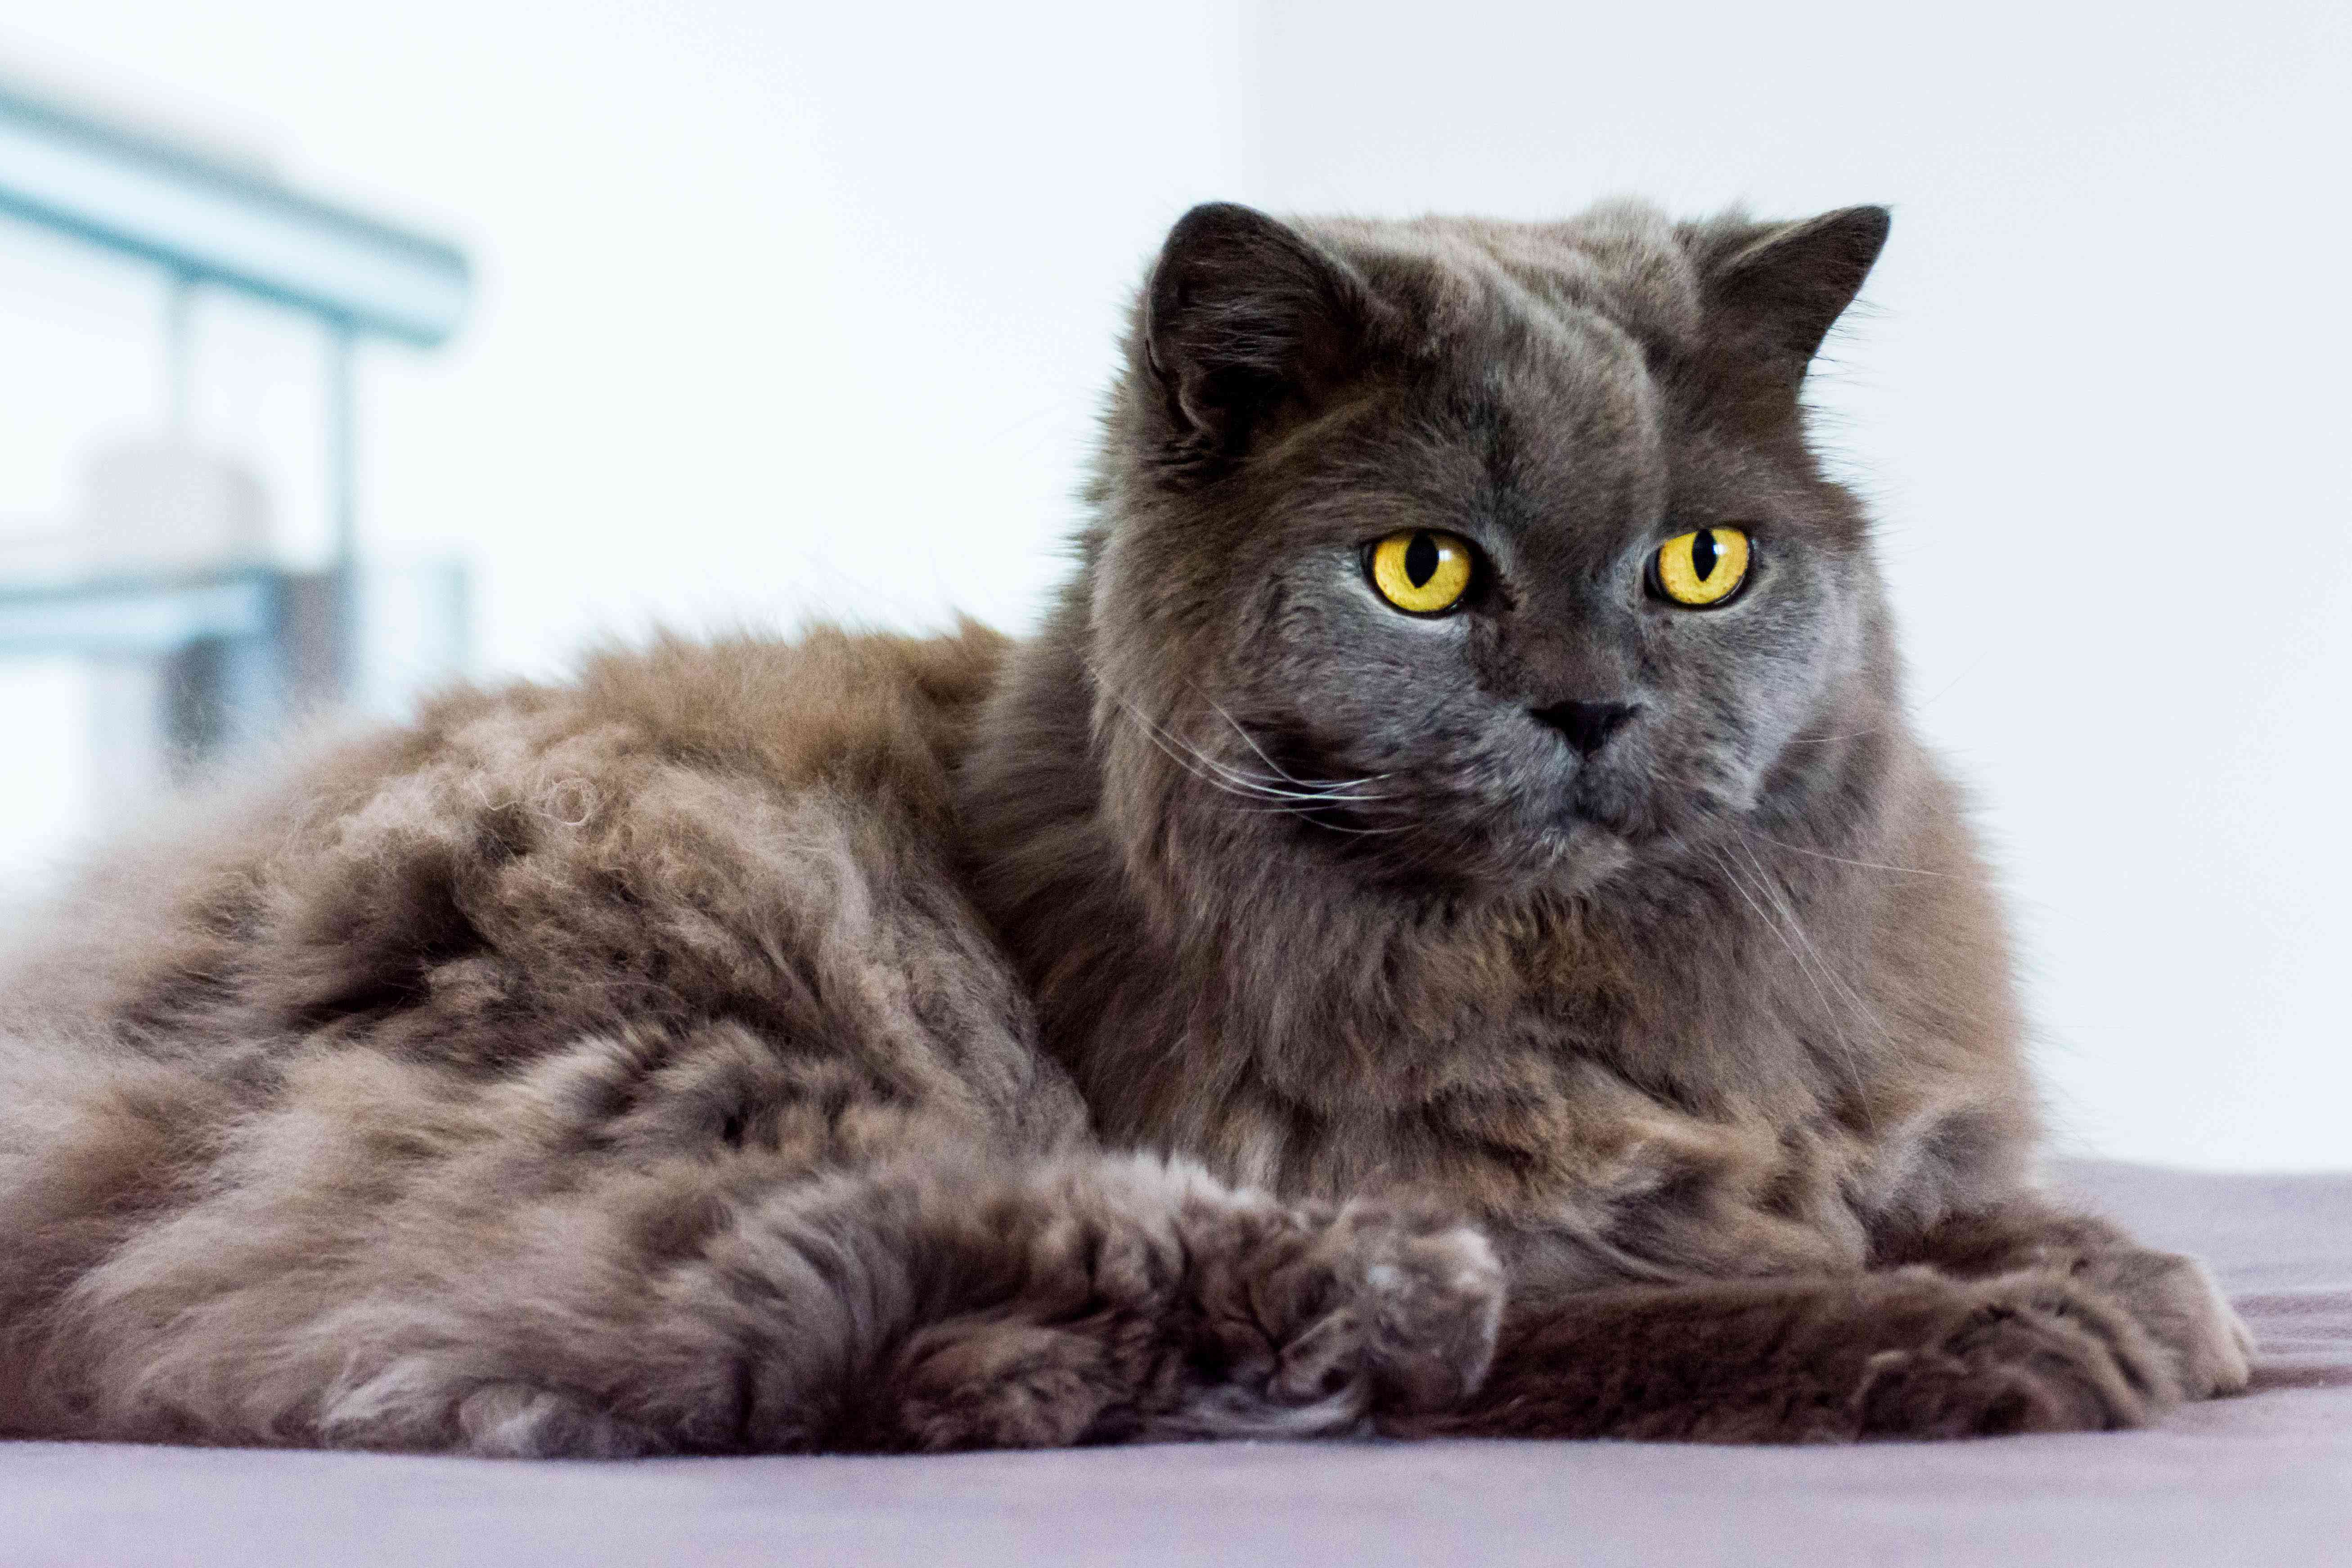 Gray British Longhair cat with yellow eyes lying on bed